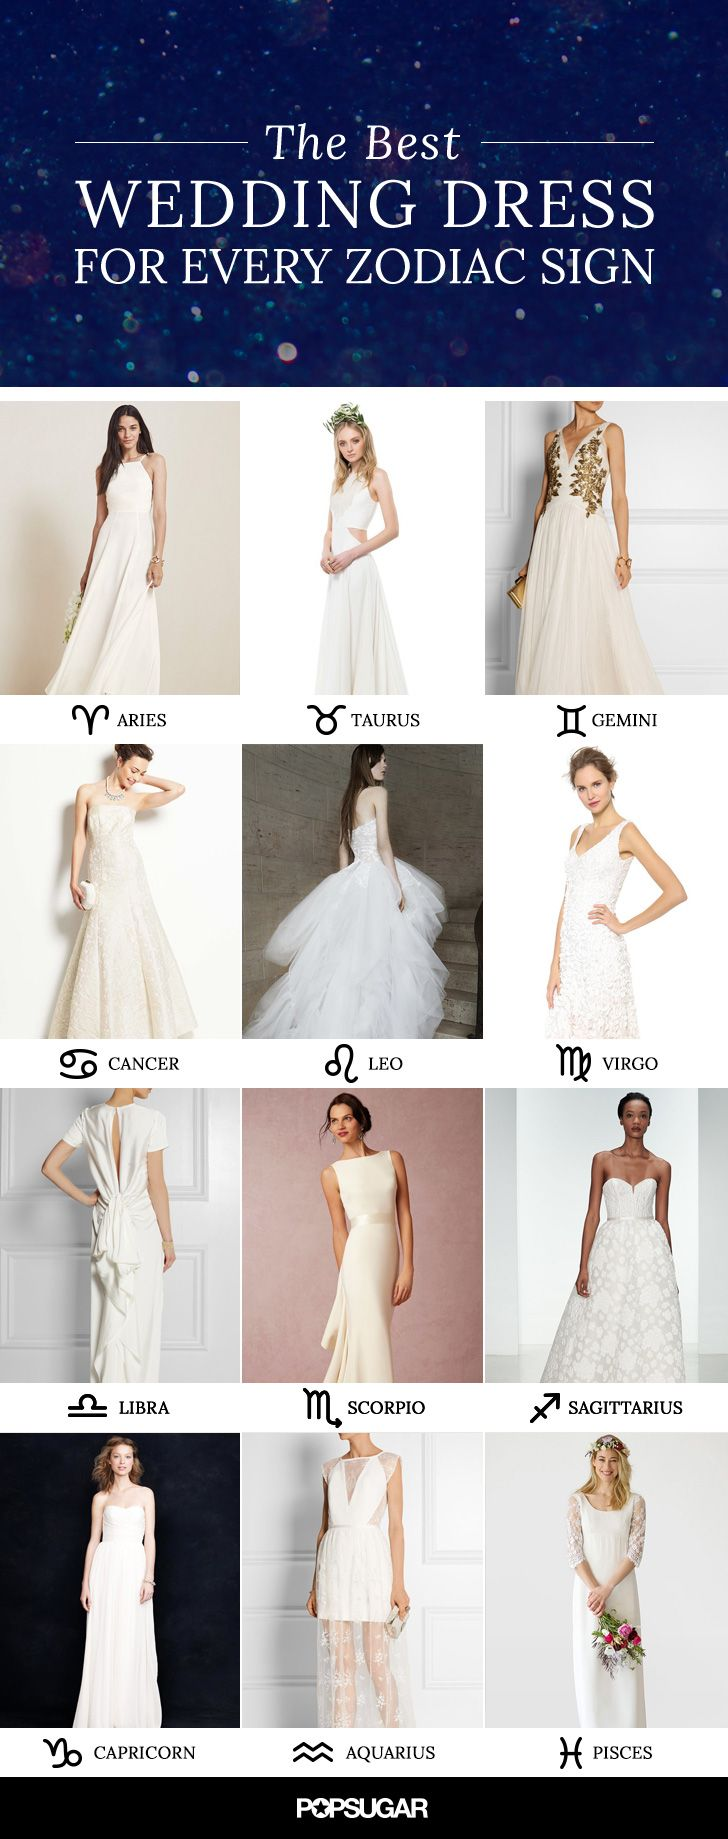 Taurus Perfect Match >> The Perfect Wedding Dress For Every Zodiac Sign | What To Wear—Anywhere | Zodiac signs, Zodiac ...